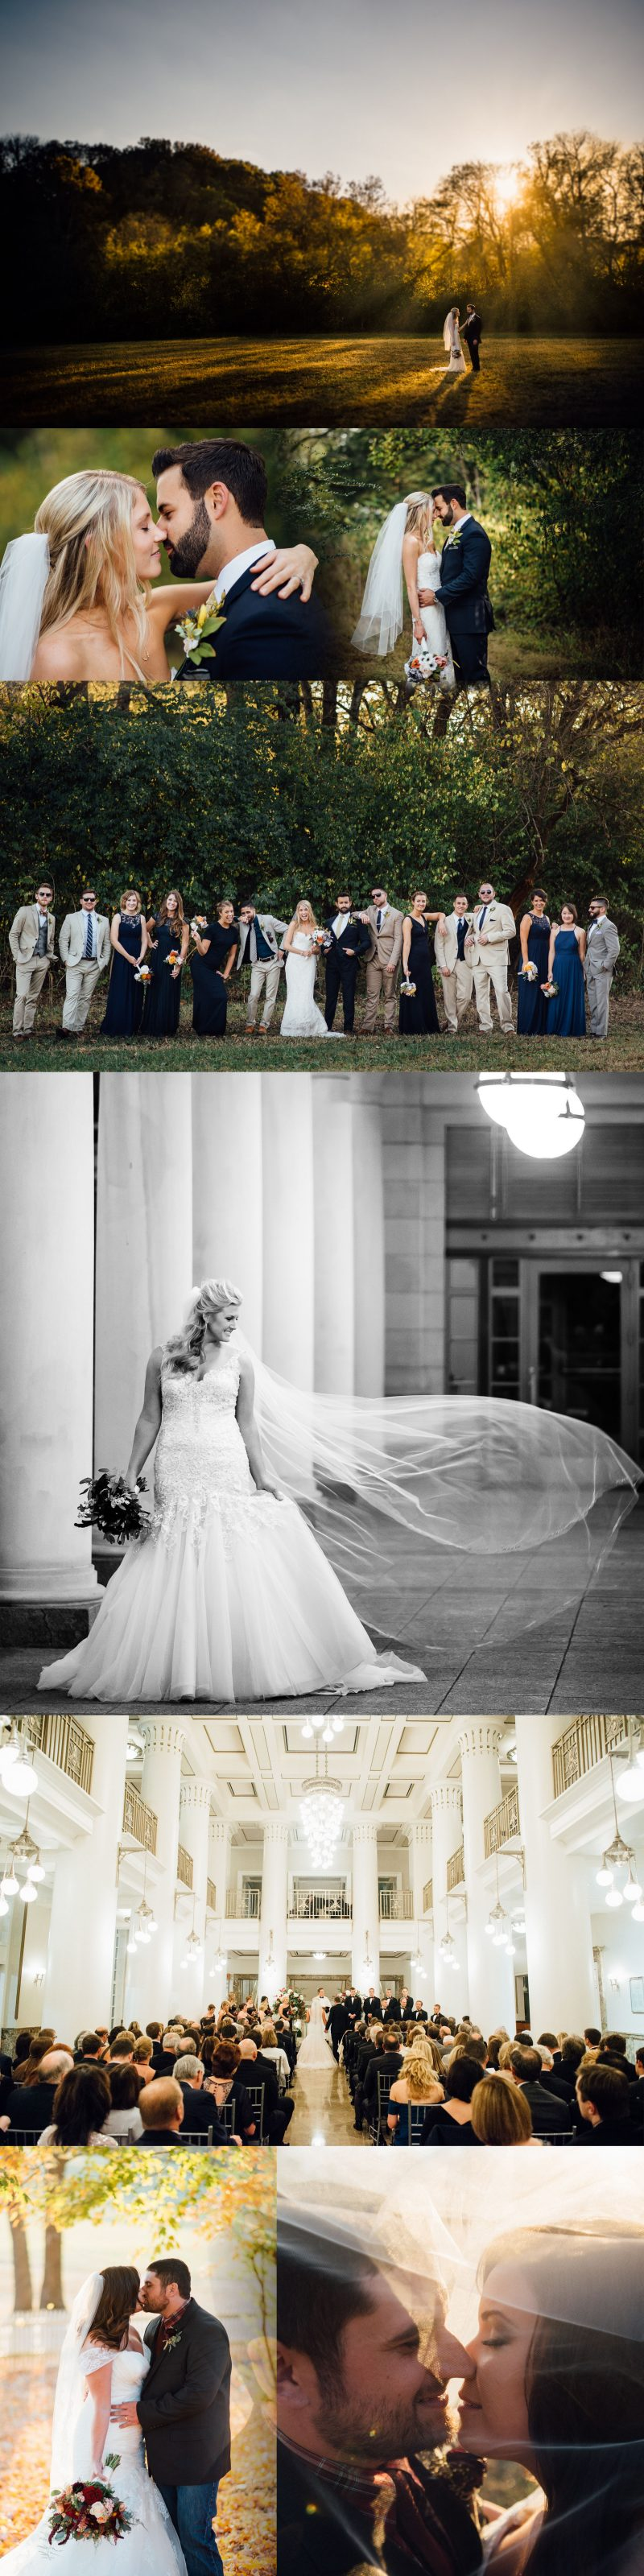 instagram7-800x3200 Best of Weddings 2016